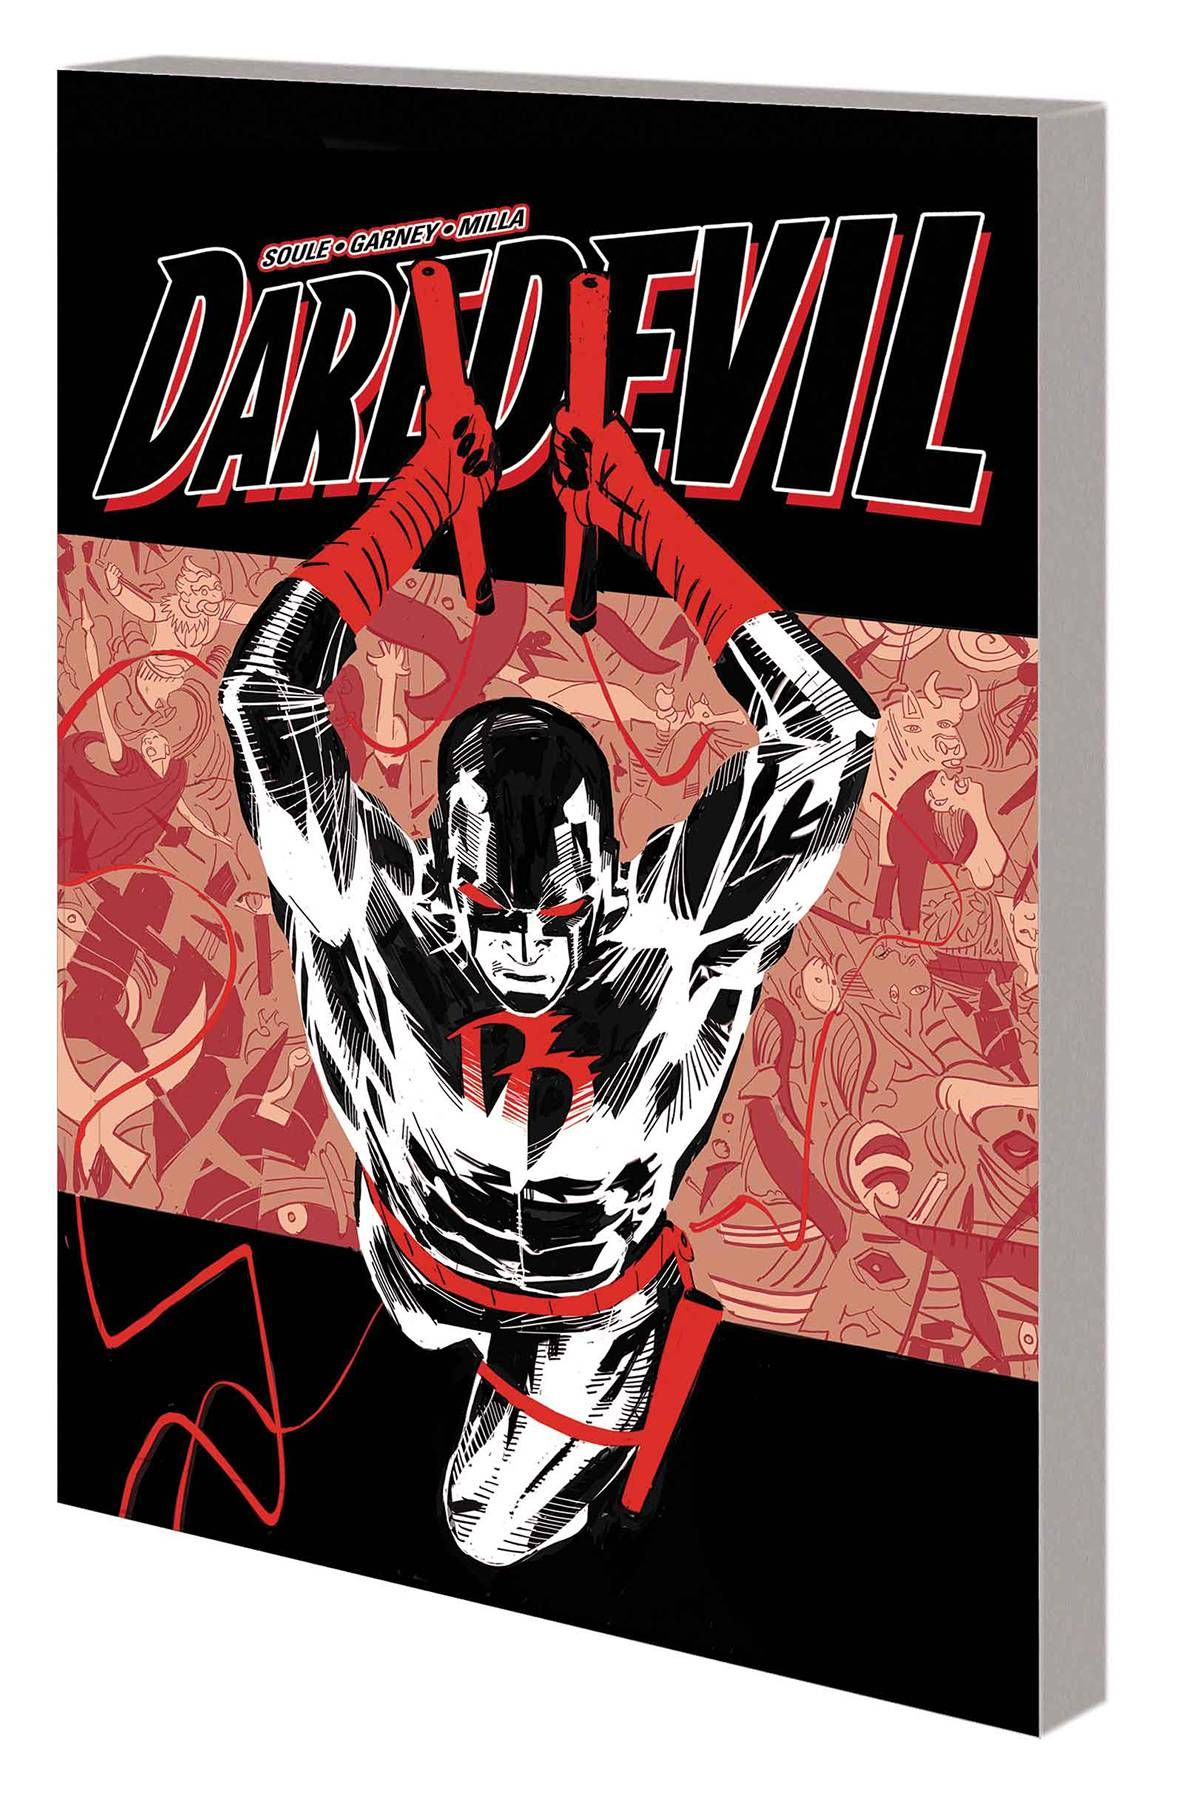 DAREDEVIL BACK IN BLACK TP VOL 03 DARK ART